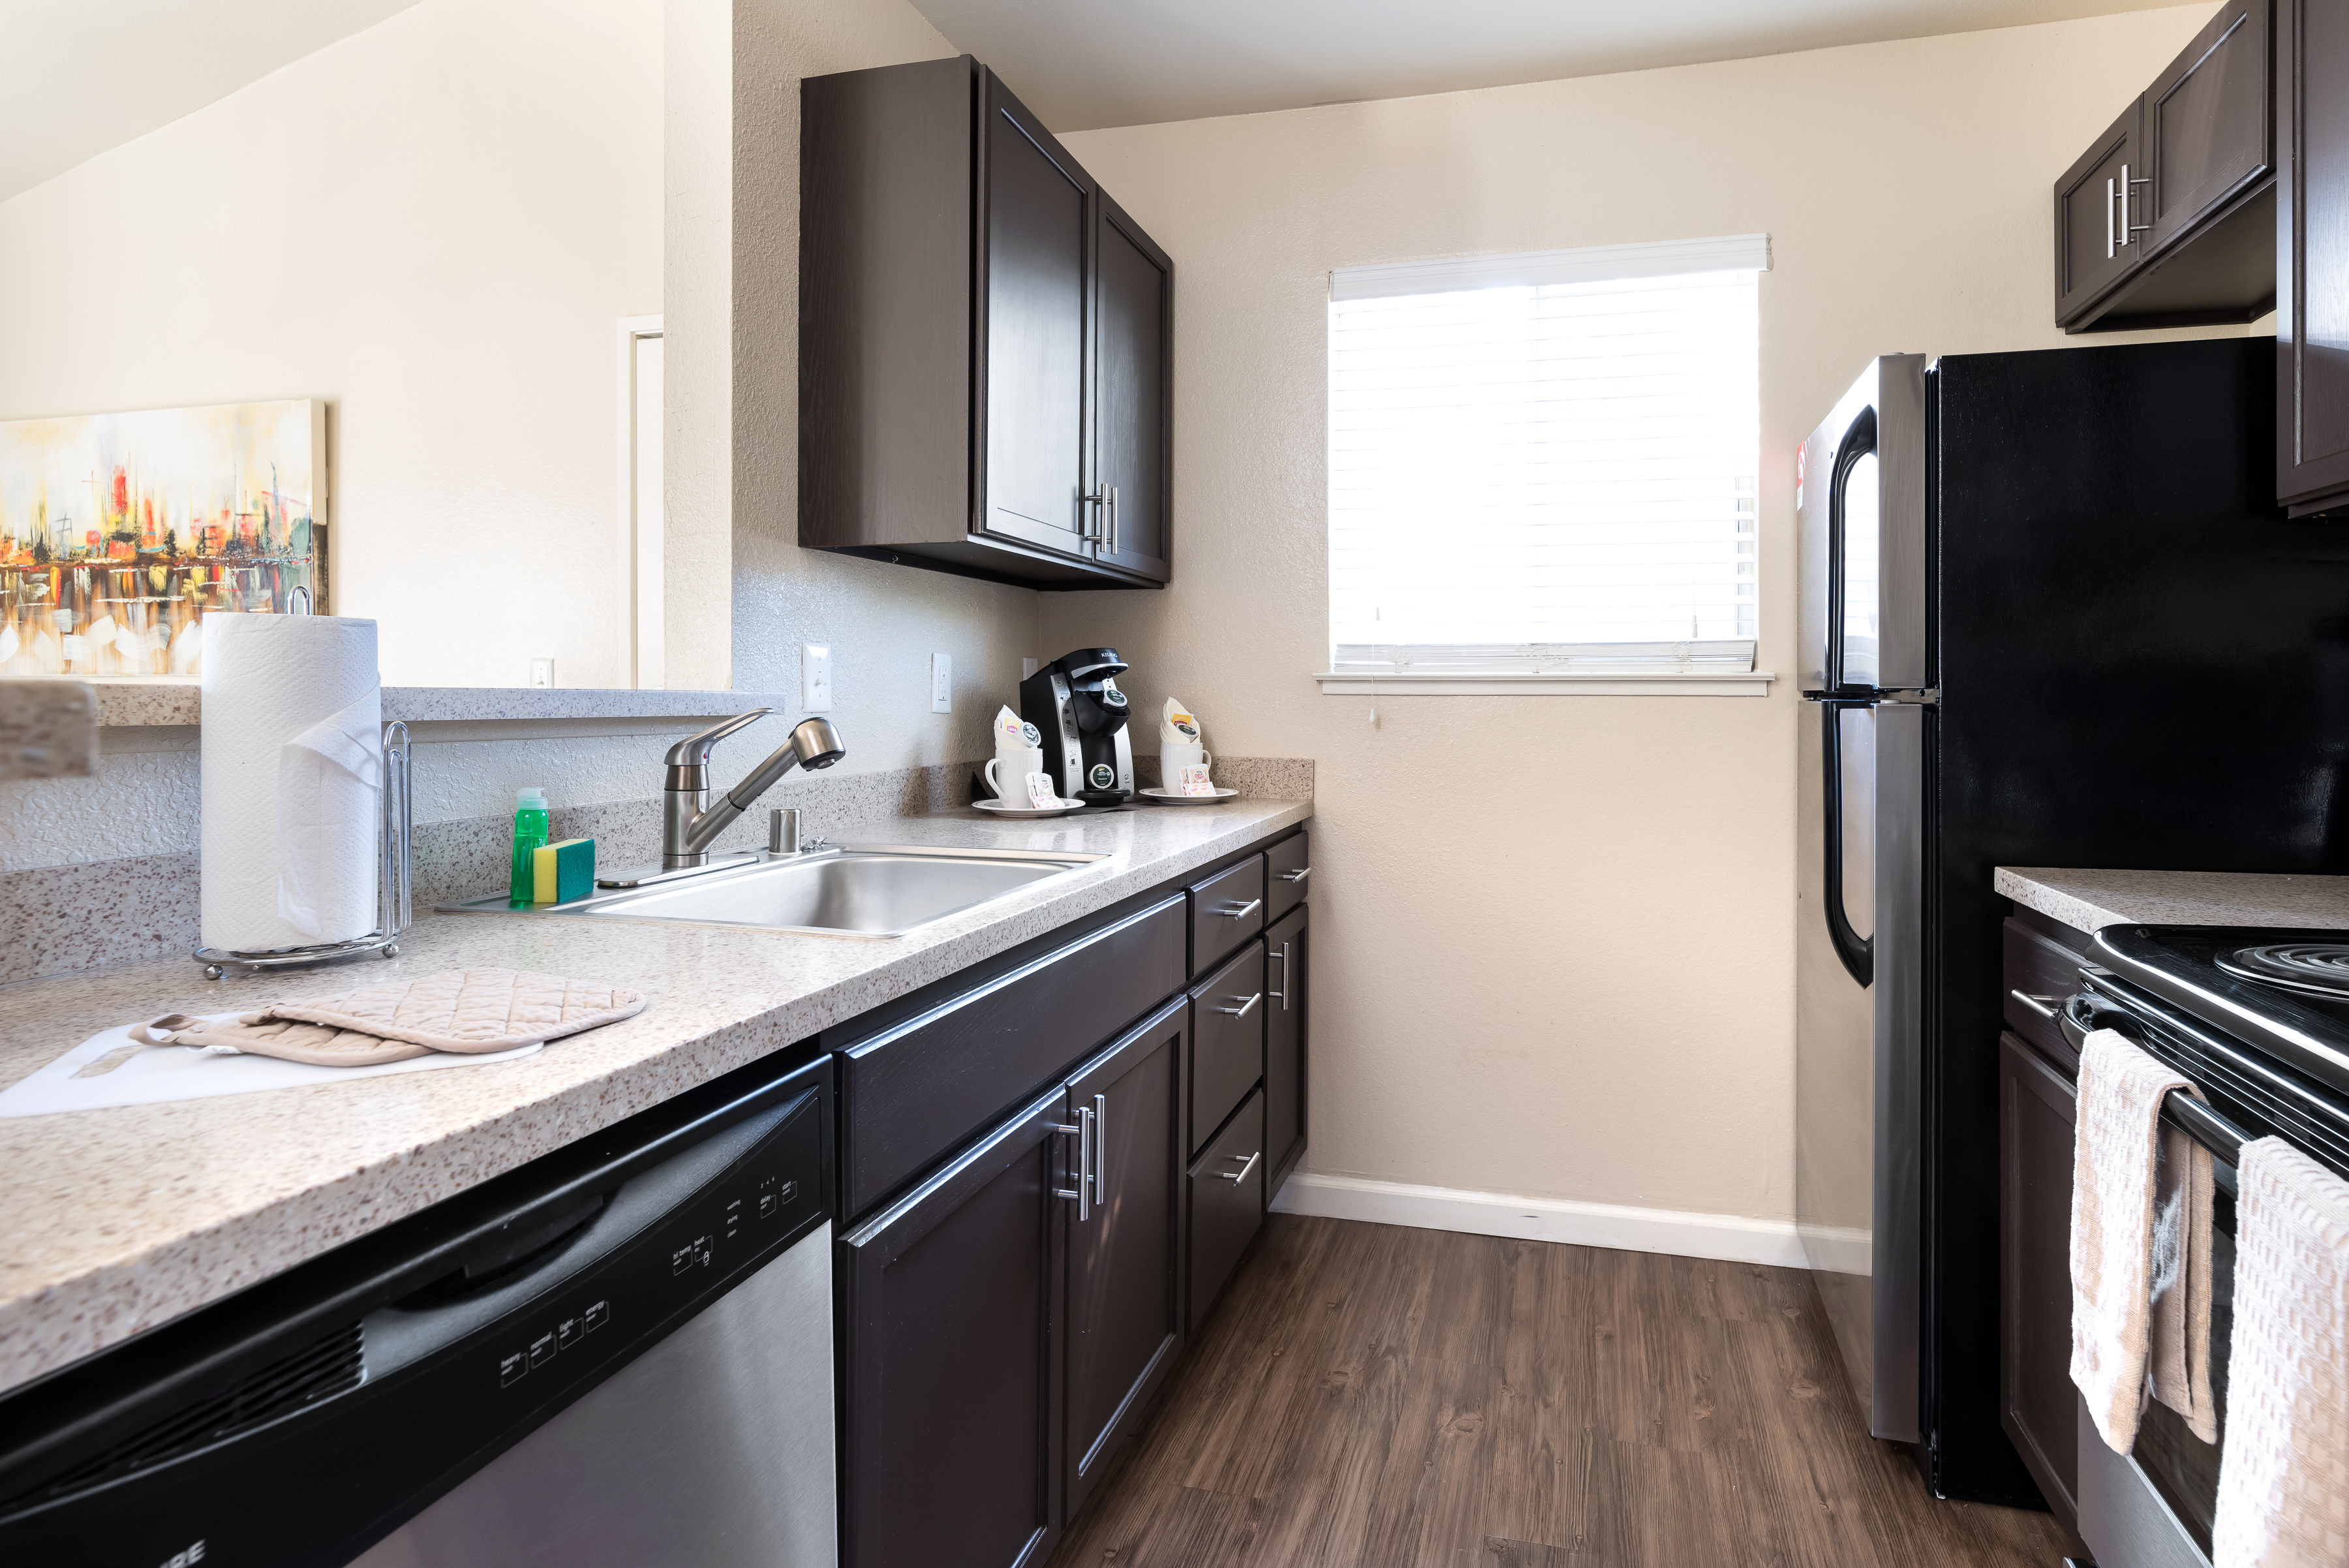 image 6 furnished 1 bedroom Apartment for rent in San Ramon, Contra Costa County